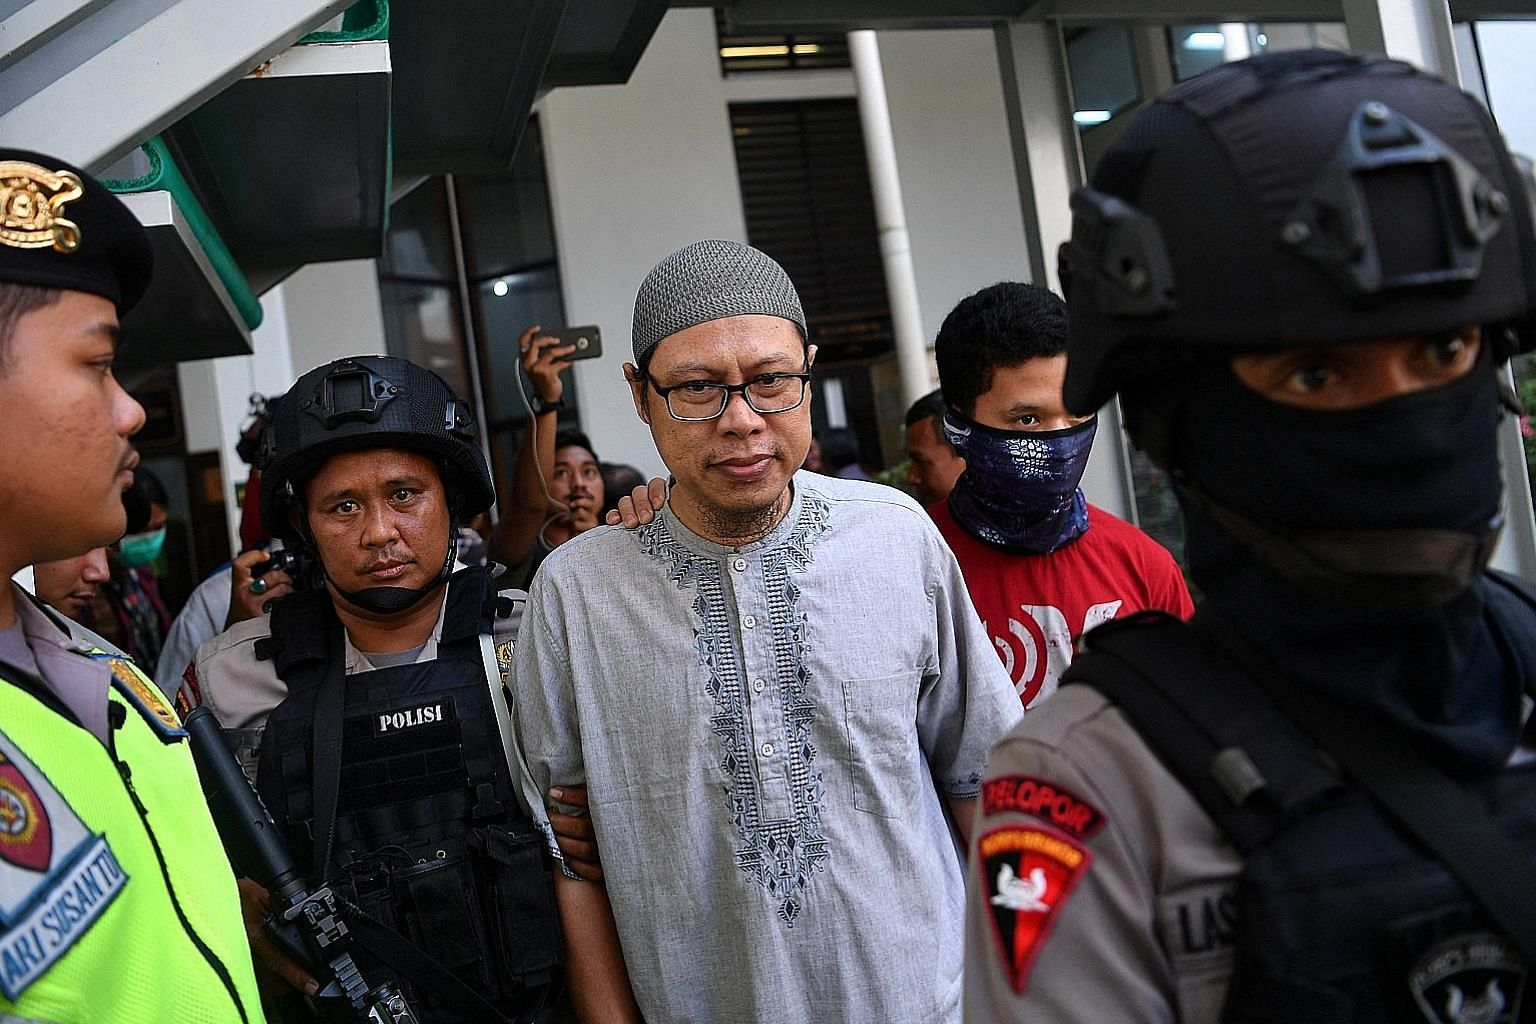 Jemaah Ansharut Daulah leader Zainal Anshori arriving in court in South Jakarta yesterday. His group was charged on July 24 with being an organisation responsible for widespread terrorism.